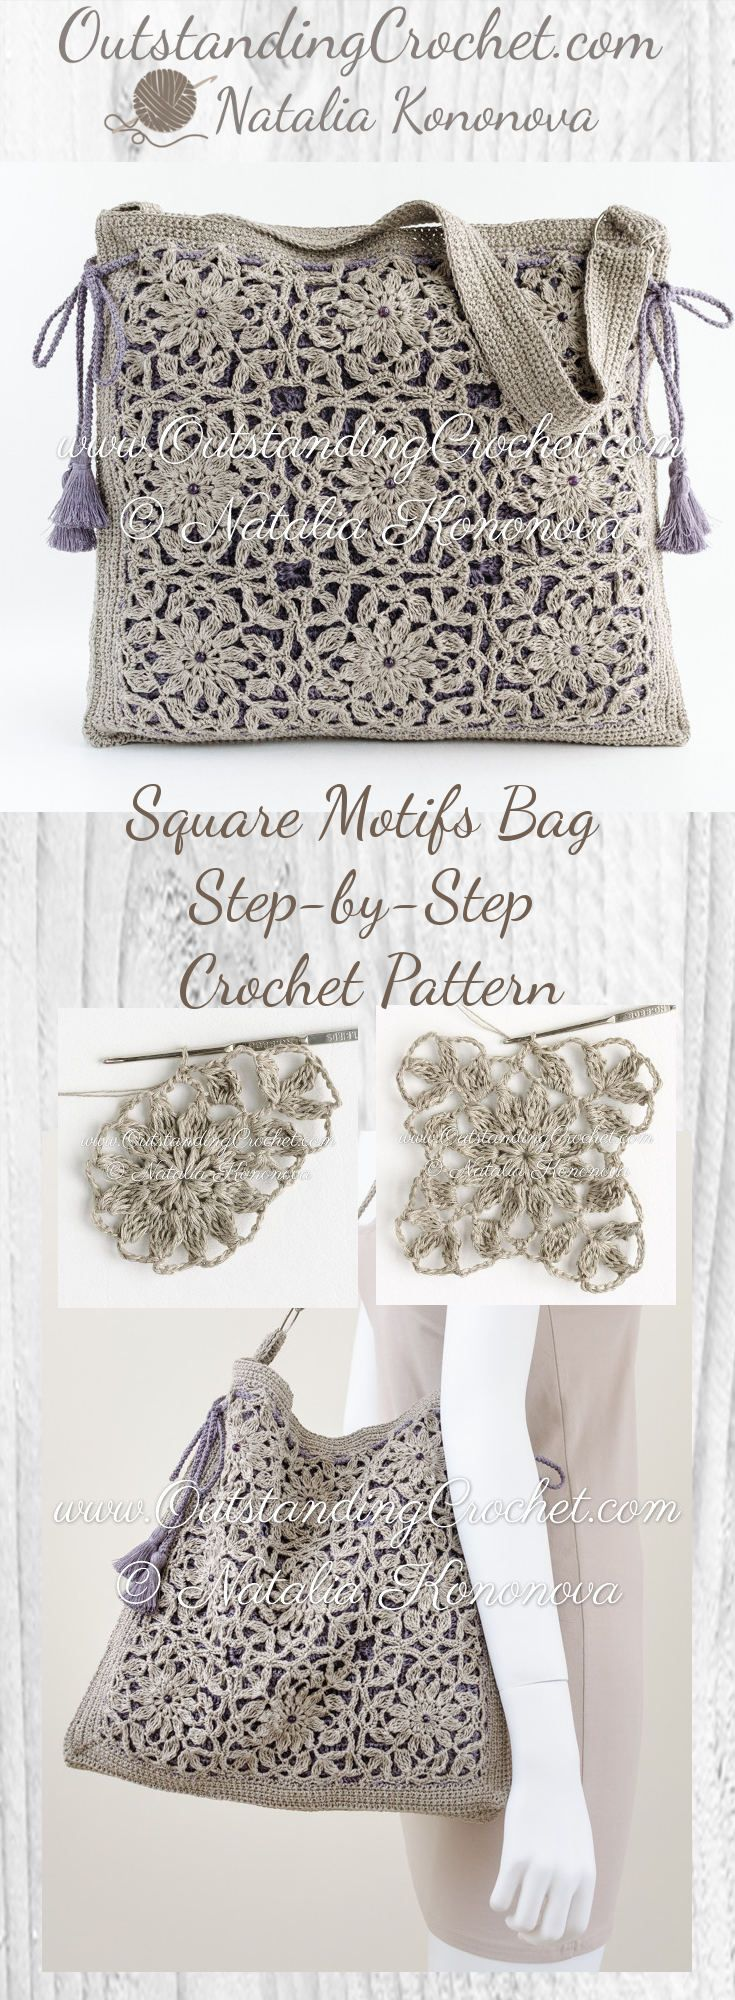 Square Motifs Shoulder Bag Step-by-Step Crochet Pattern at ww ...